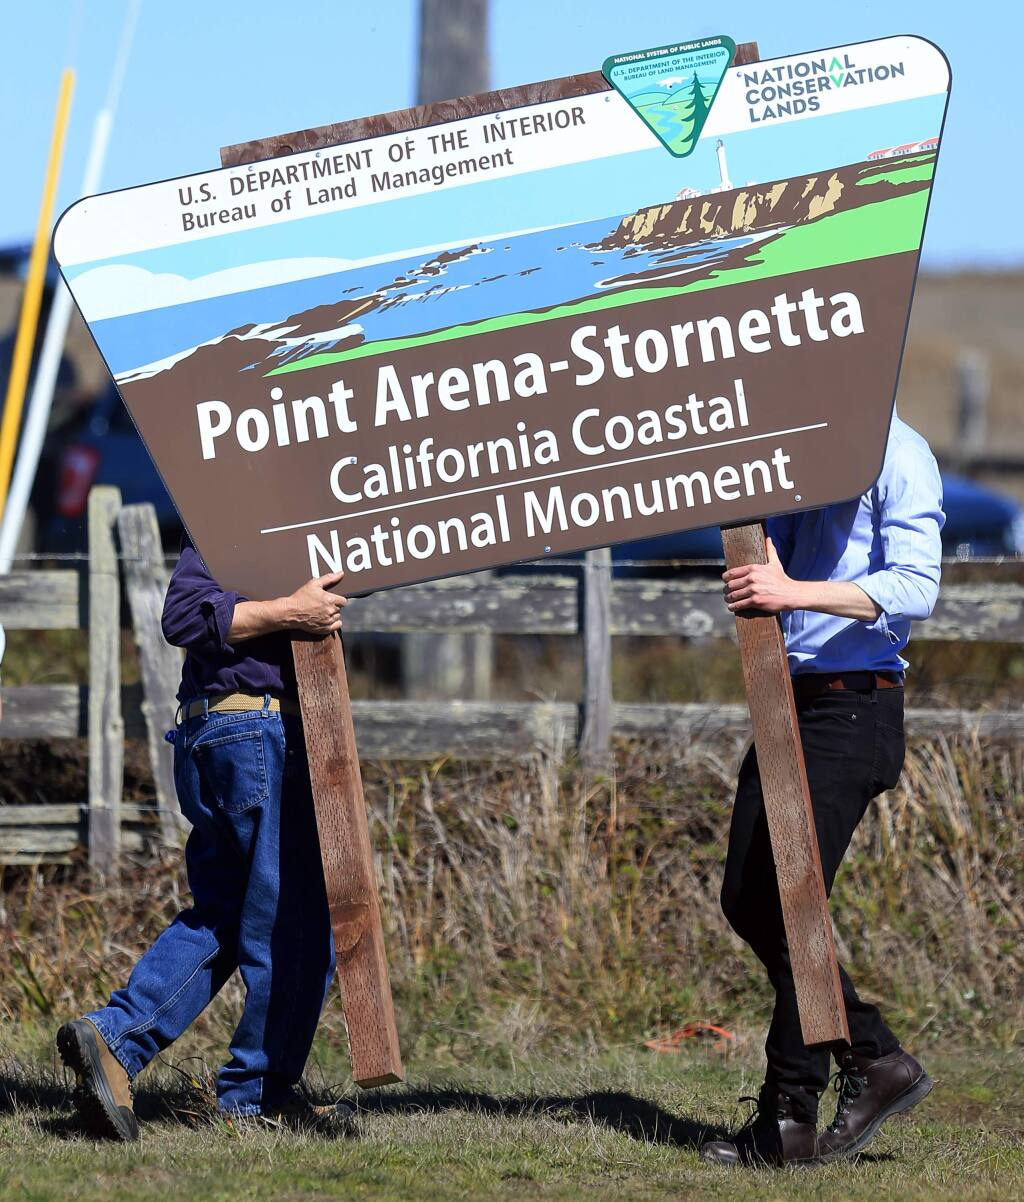 U.S. Interior Secretary Sally Jewell dedicated the Point Arena-Stornetta Public Lands as an official part of the 1,100-mile California Coastal National Monument in Point Arena, Wednesday March 12, 2014 in Mendocino County. (KENT PORTER/ PD FILE)